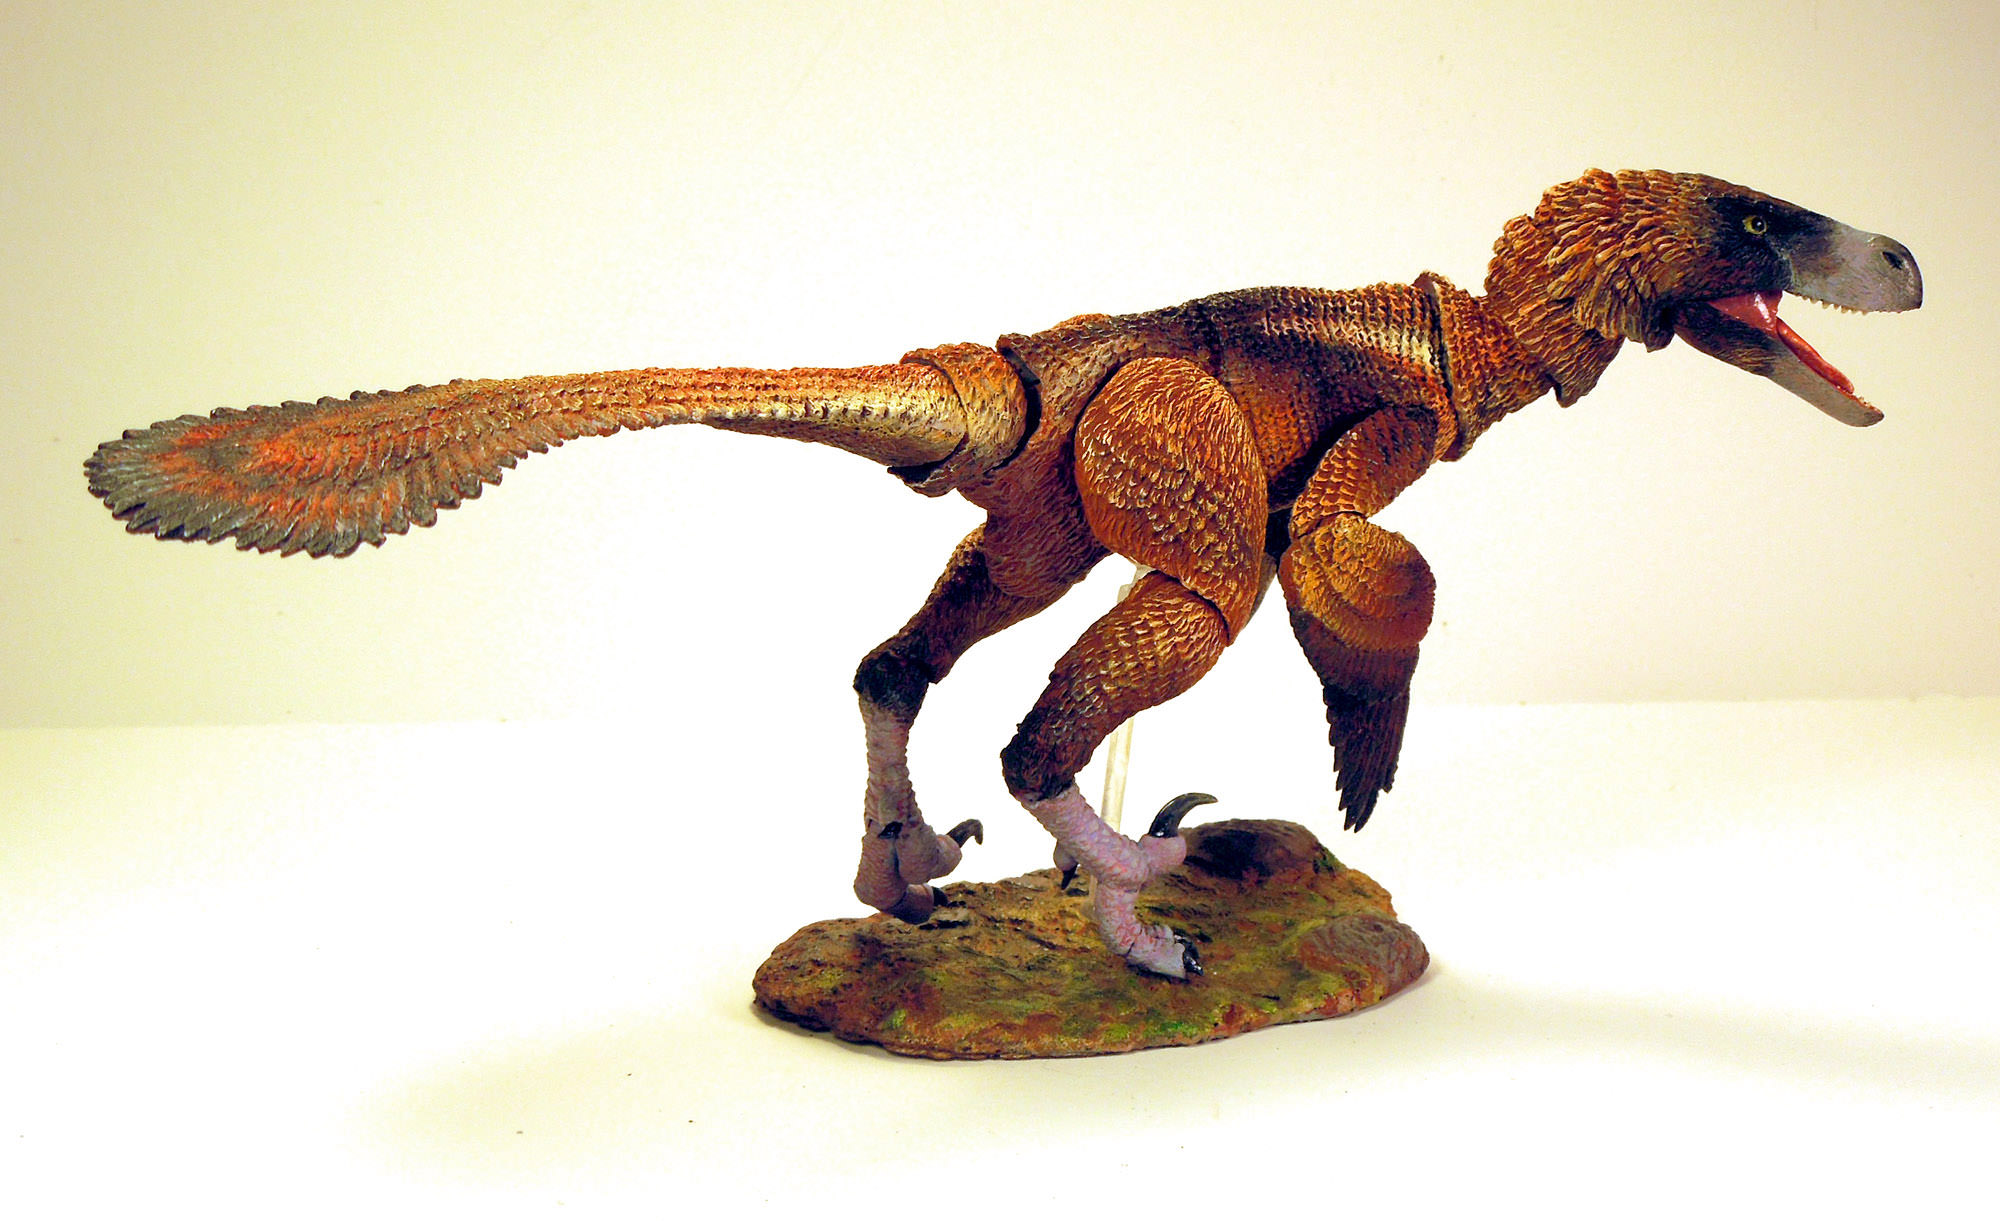 """Set A Velociraptor /""""Build-A-Raptor/"""" Kit by Beasts of the Mesozoic"""